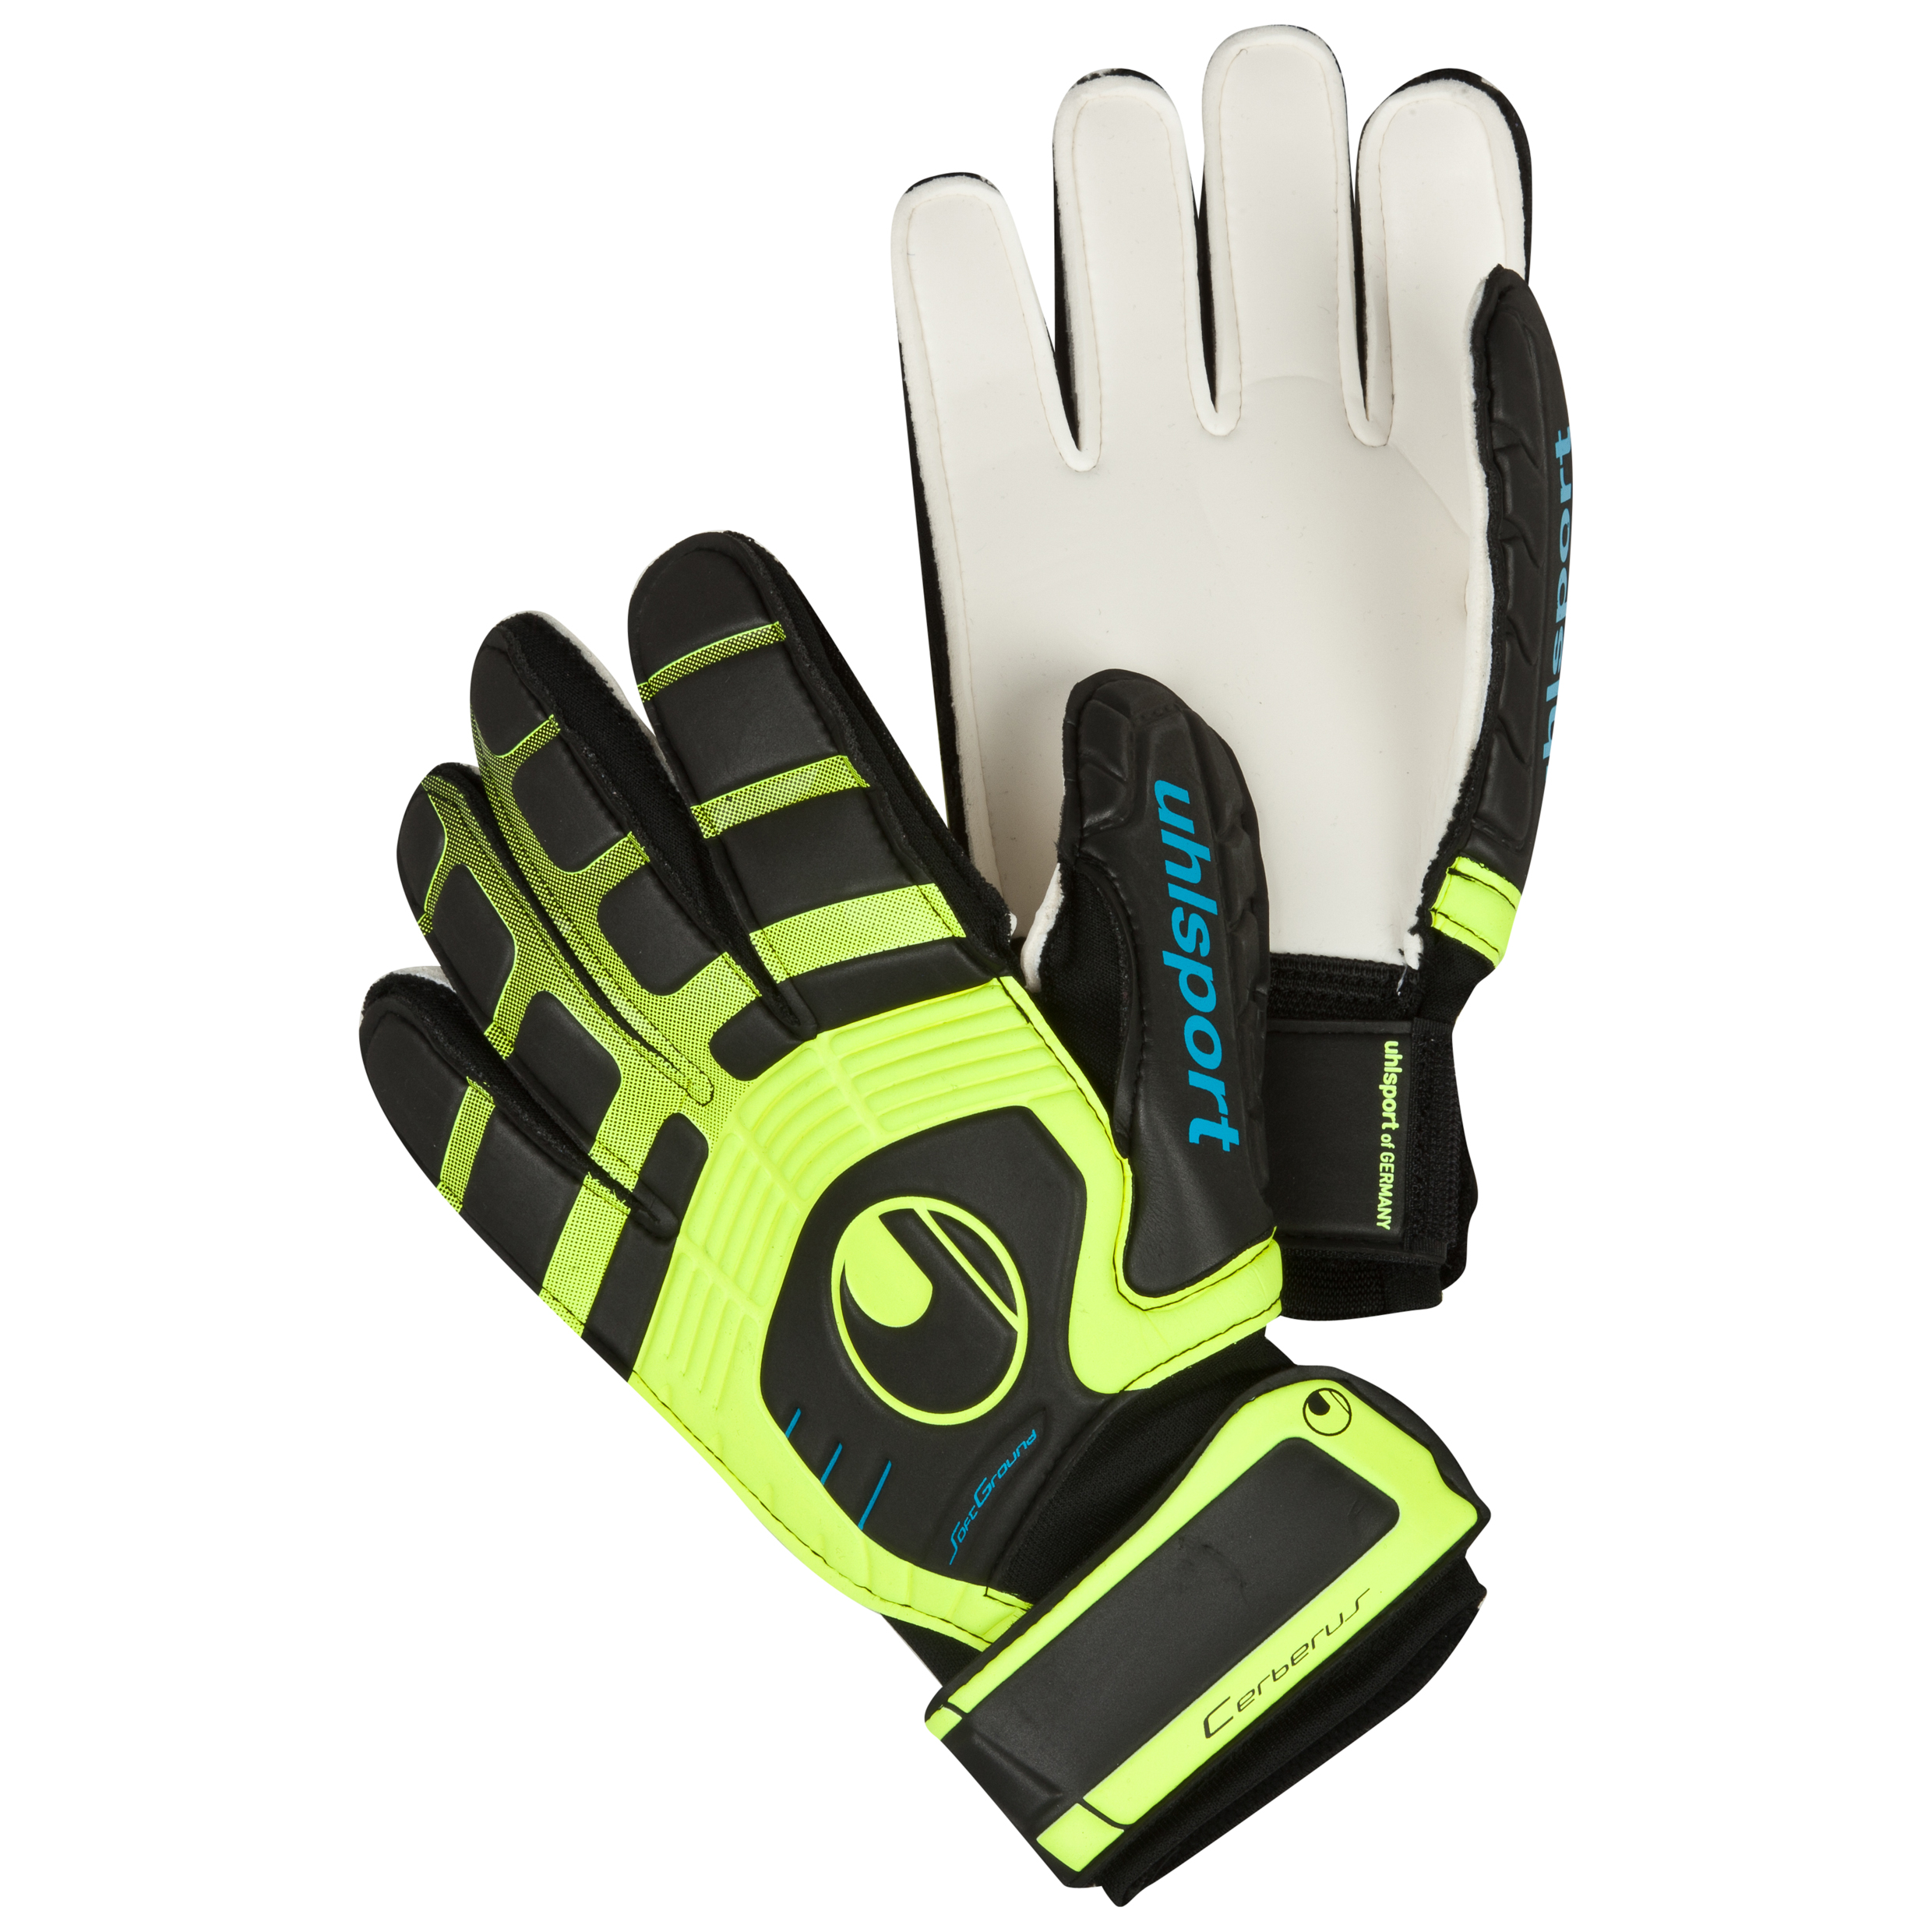 Uhlsport Cerberus Soft Goalkeeper Gloves - Black/Fluo Yellow/Cyan - Kids